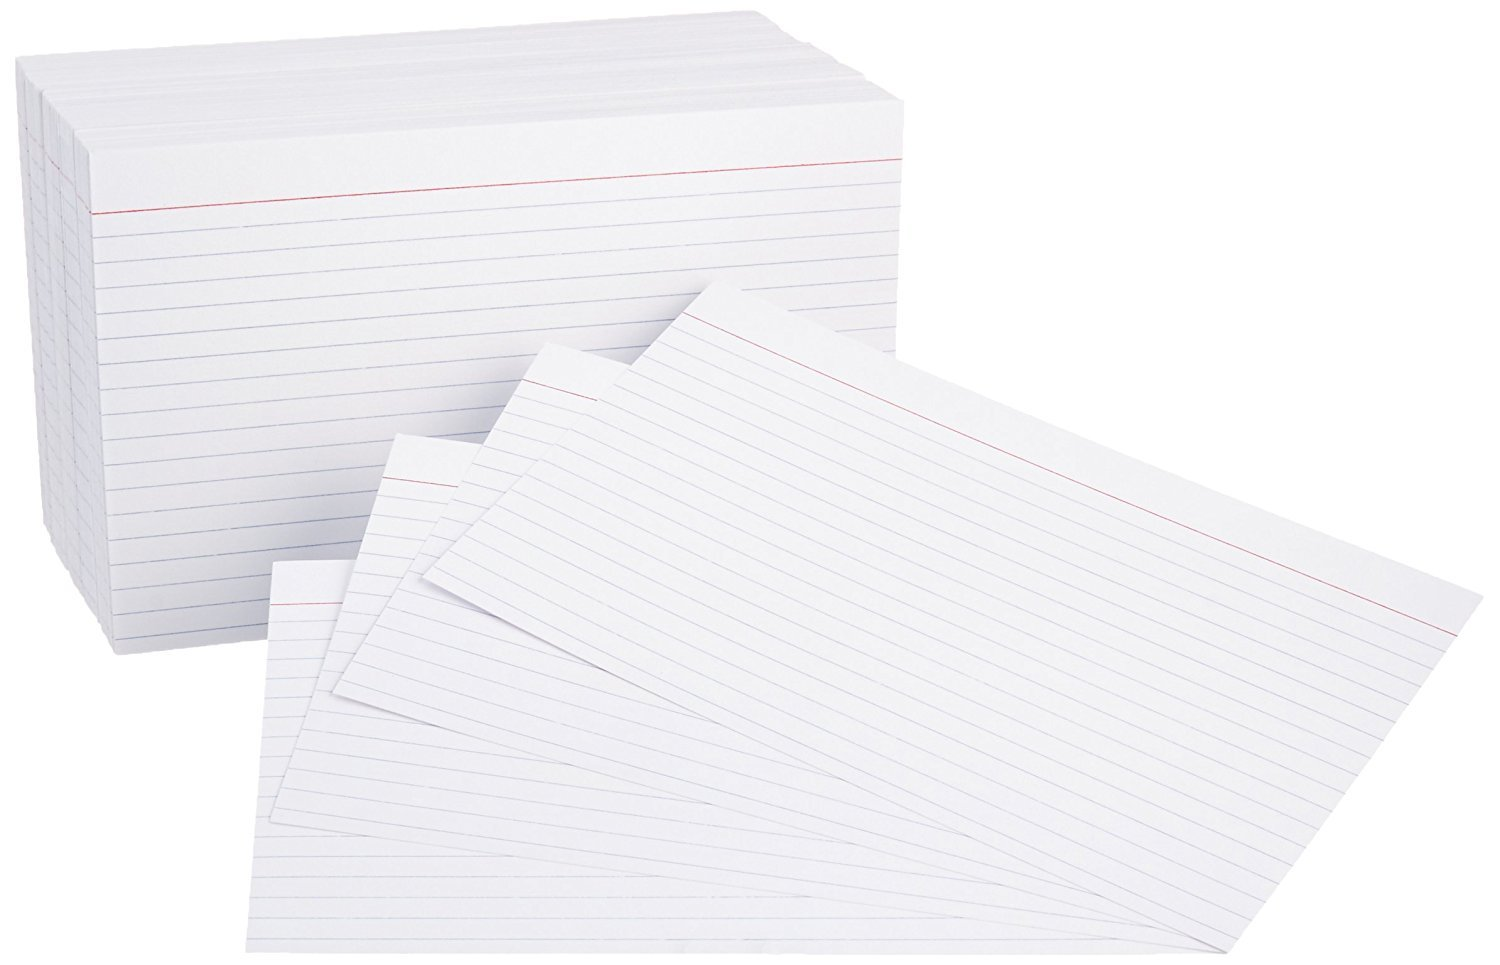 Office Basiks 5 x 8-inch Ruled White Index Cards, 500-Count